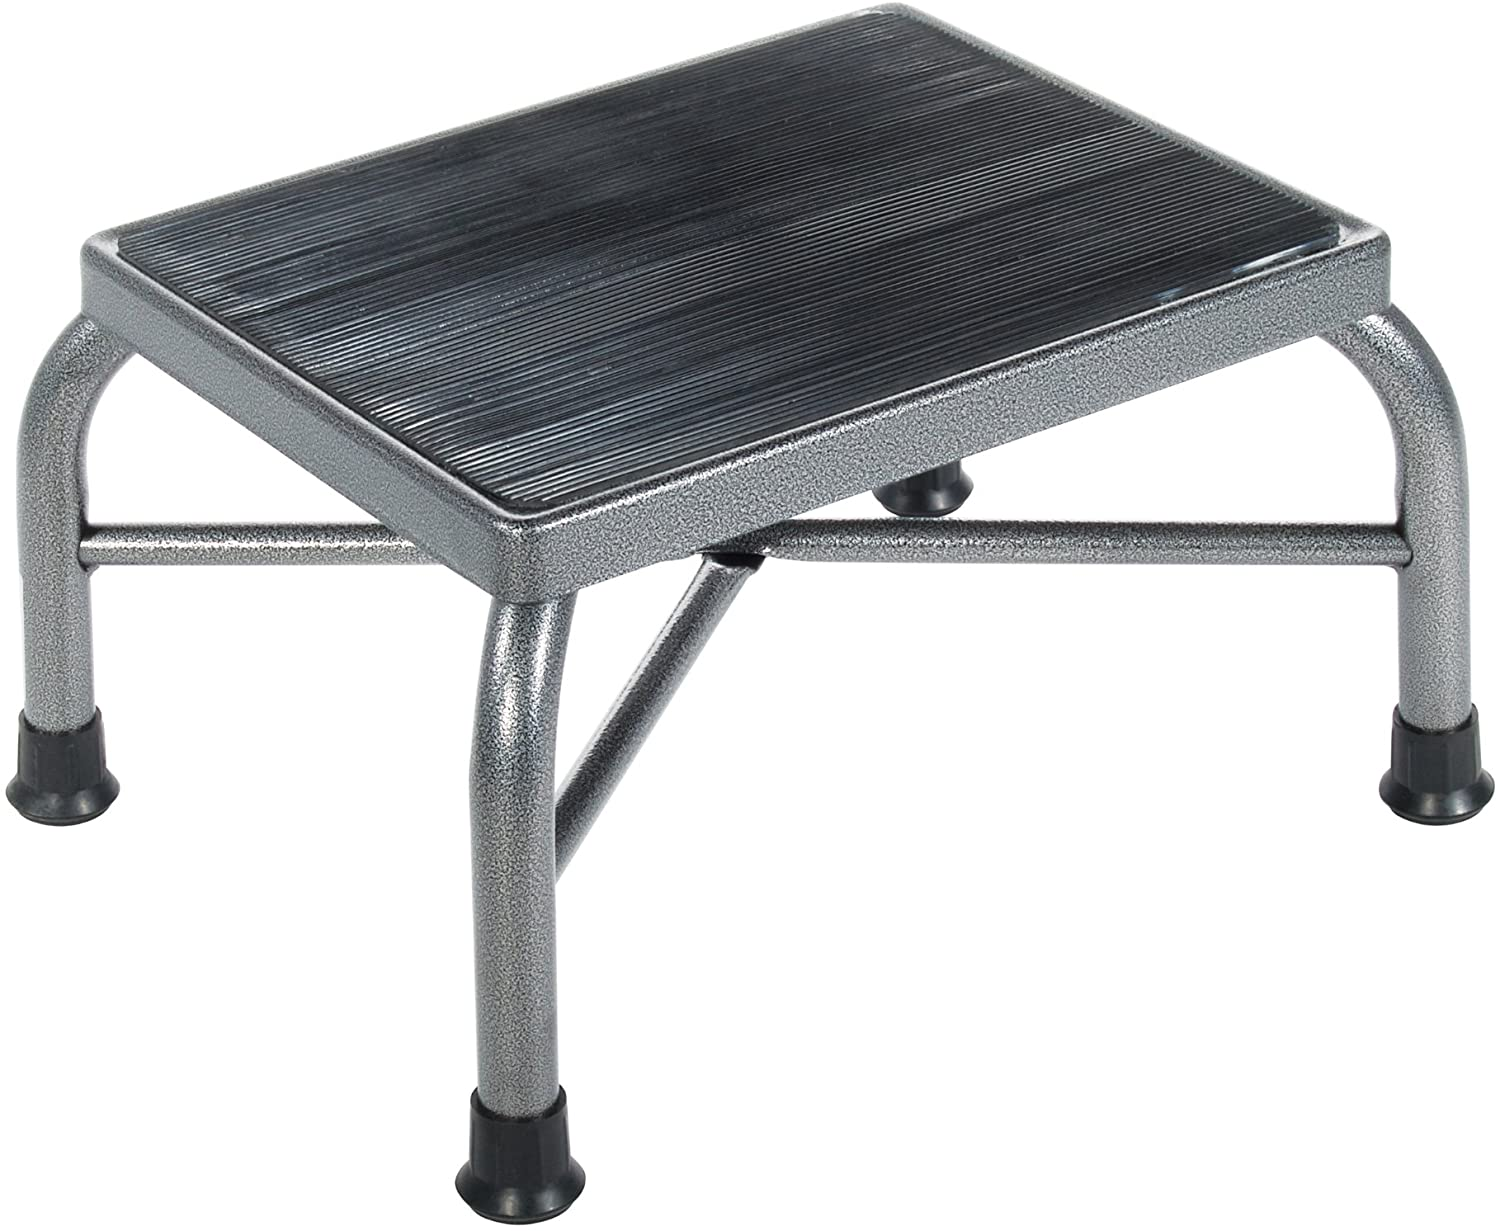 Drive Medical Heavy Duty Bariatric Footstool with Non Skid Rubber Platform, Silver Vein (Does Not Have Handrail)